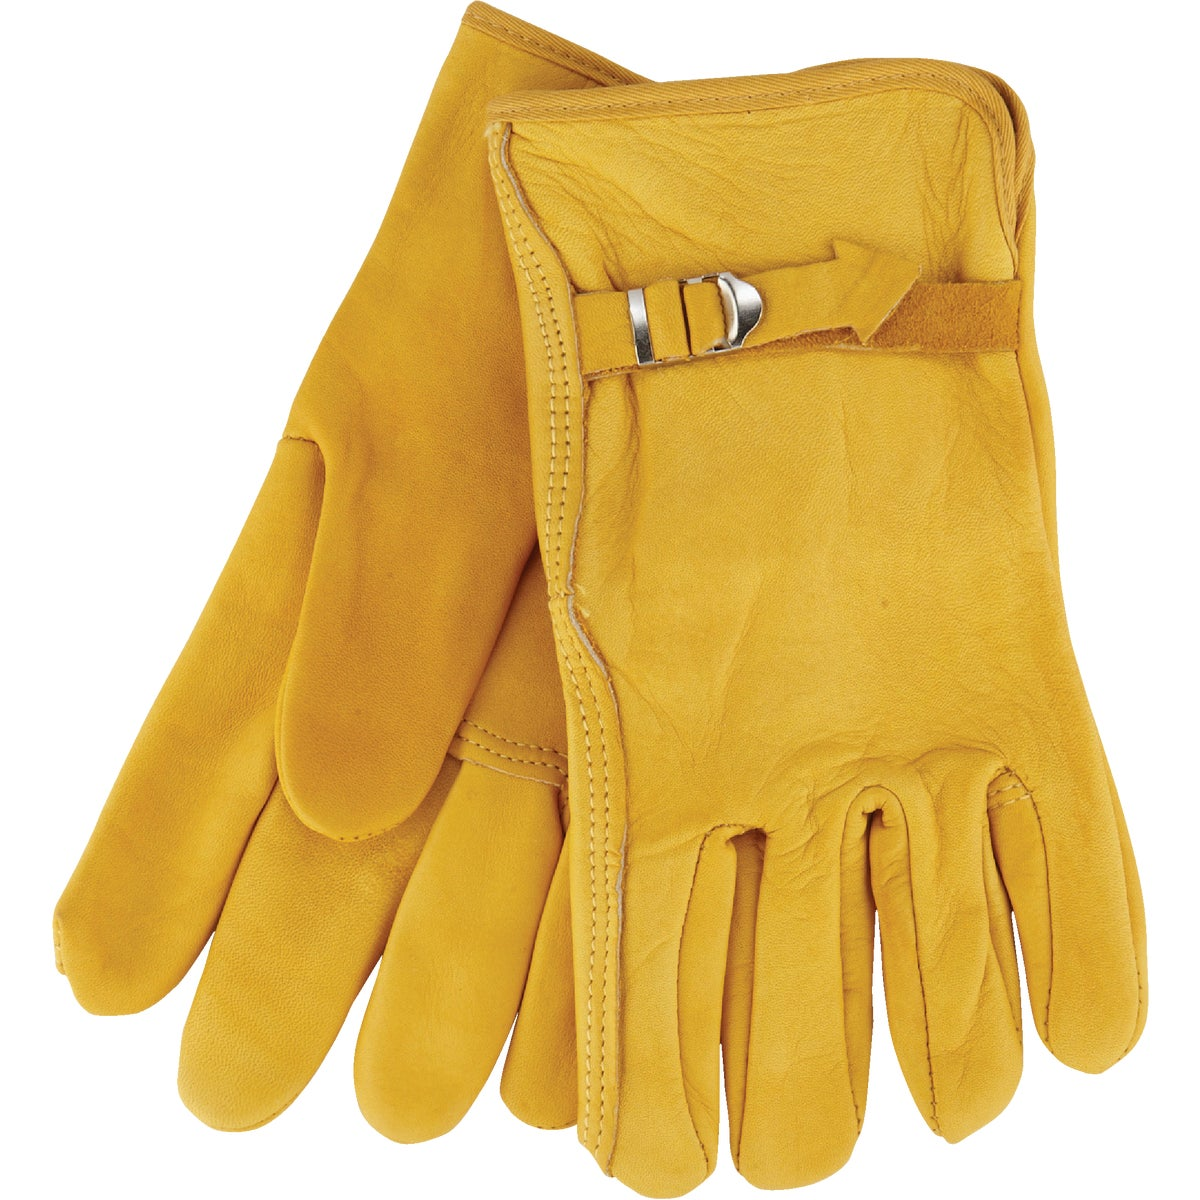 LRG GRAIN DRIVER GLOVE - 713856 by Do it Best